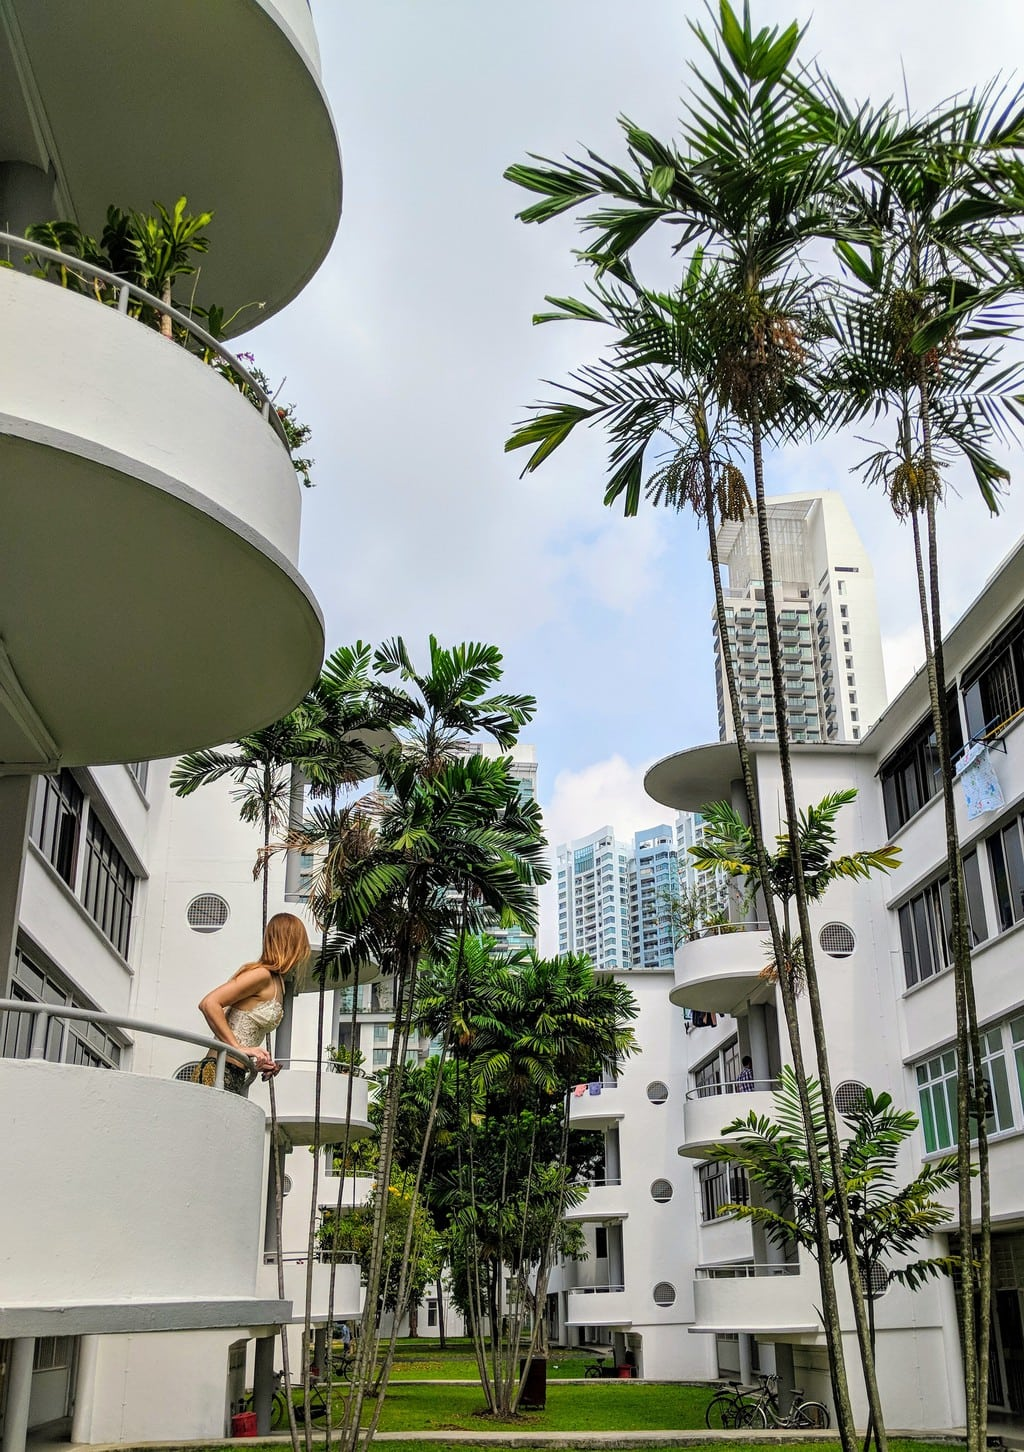 Tiong Bahru architecture